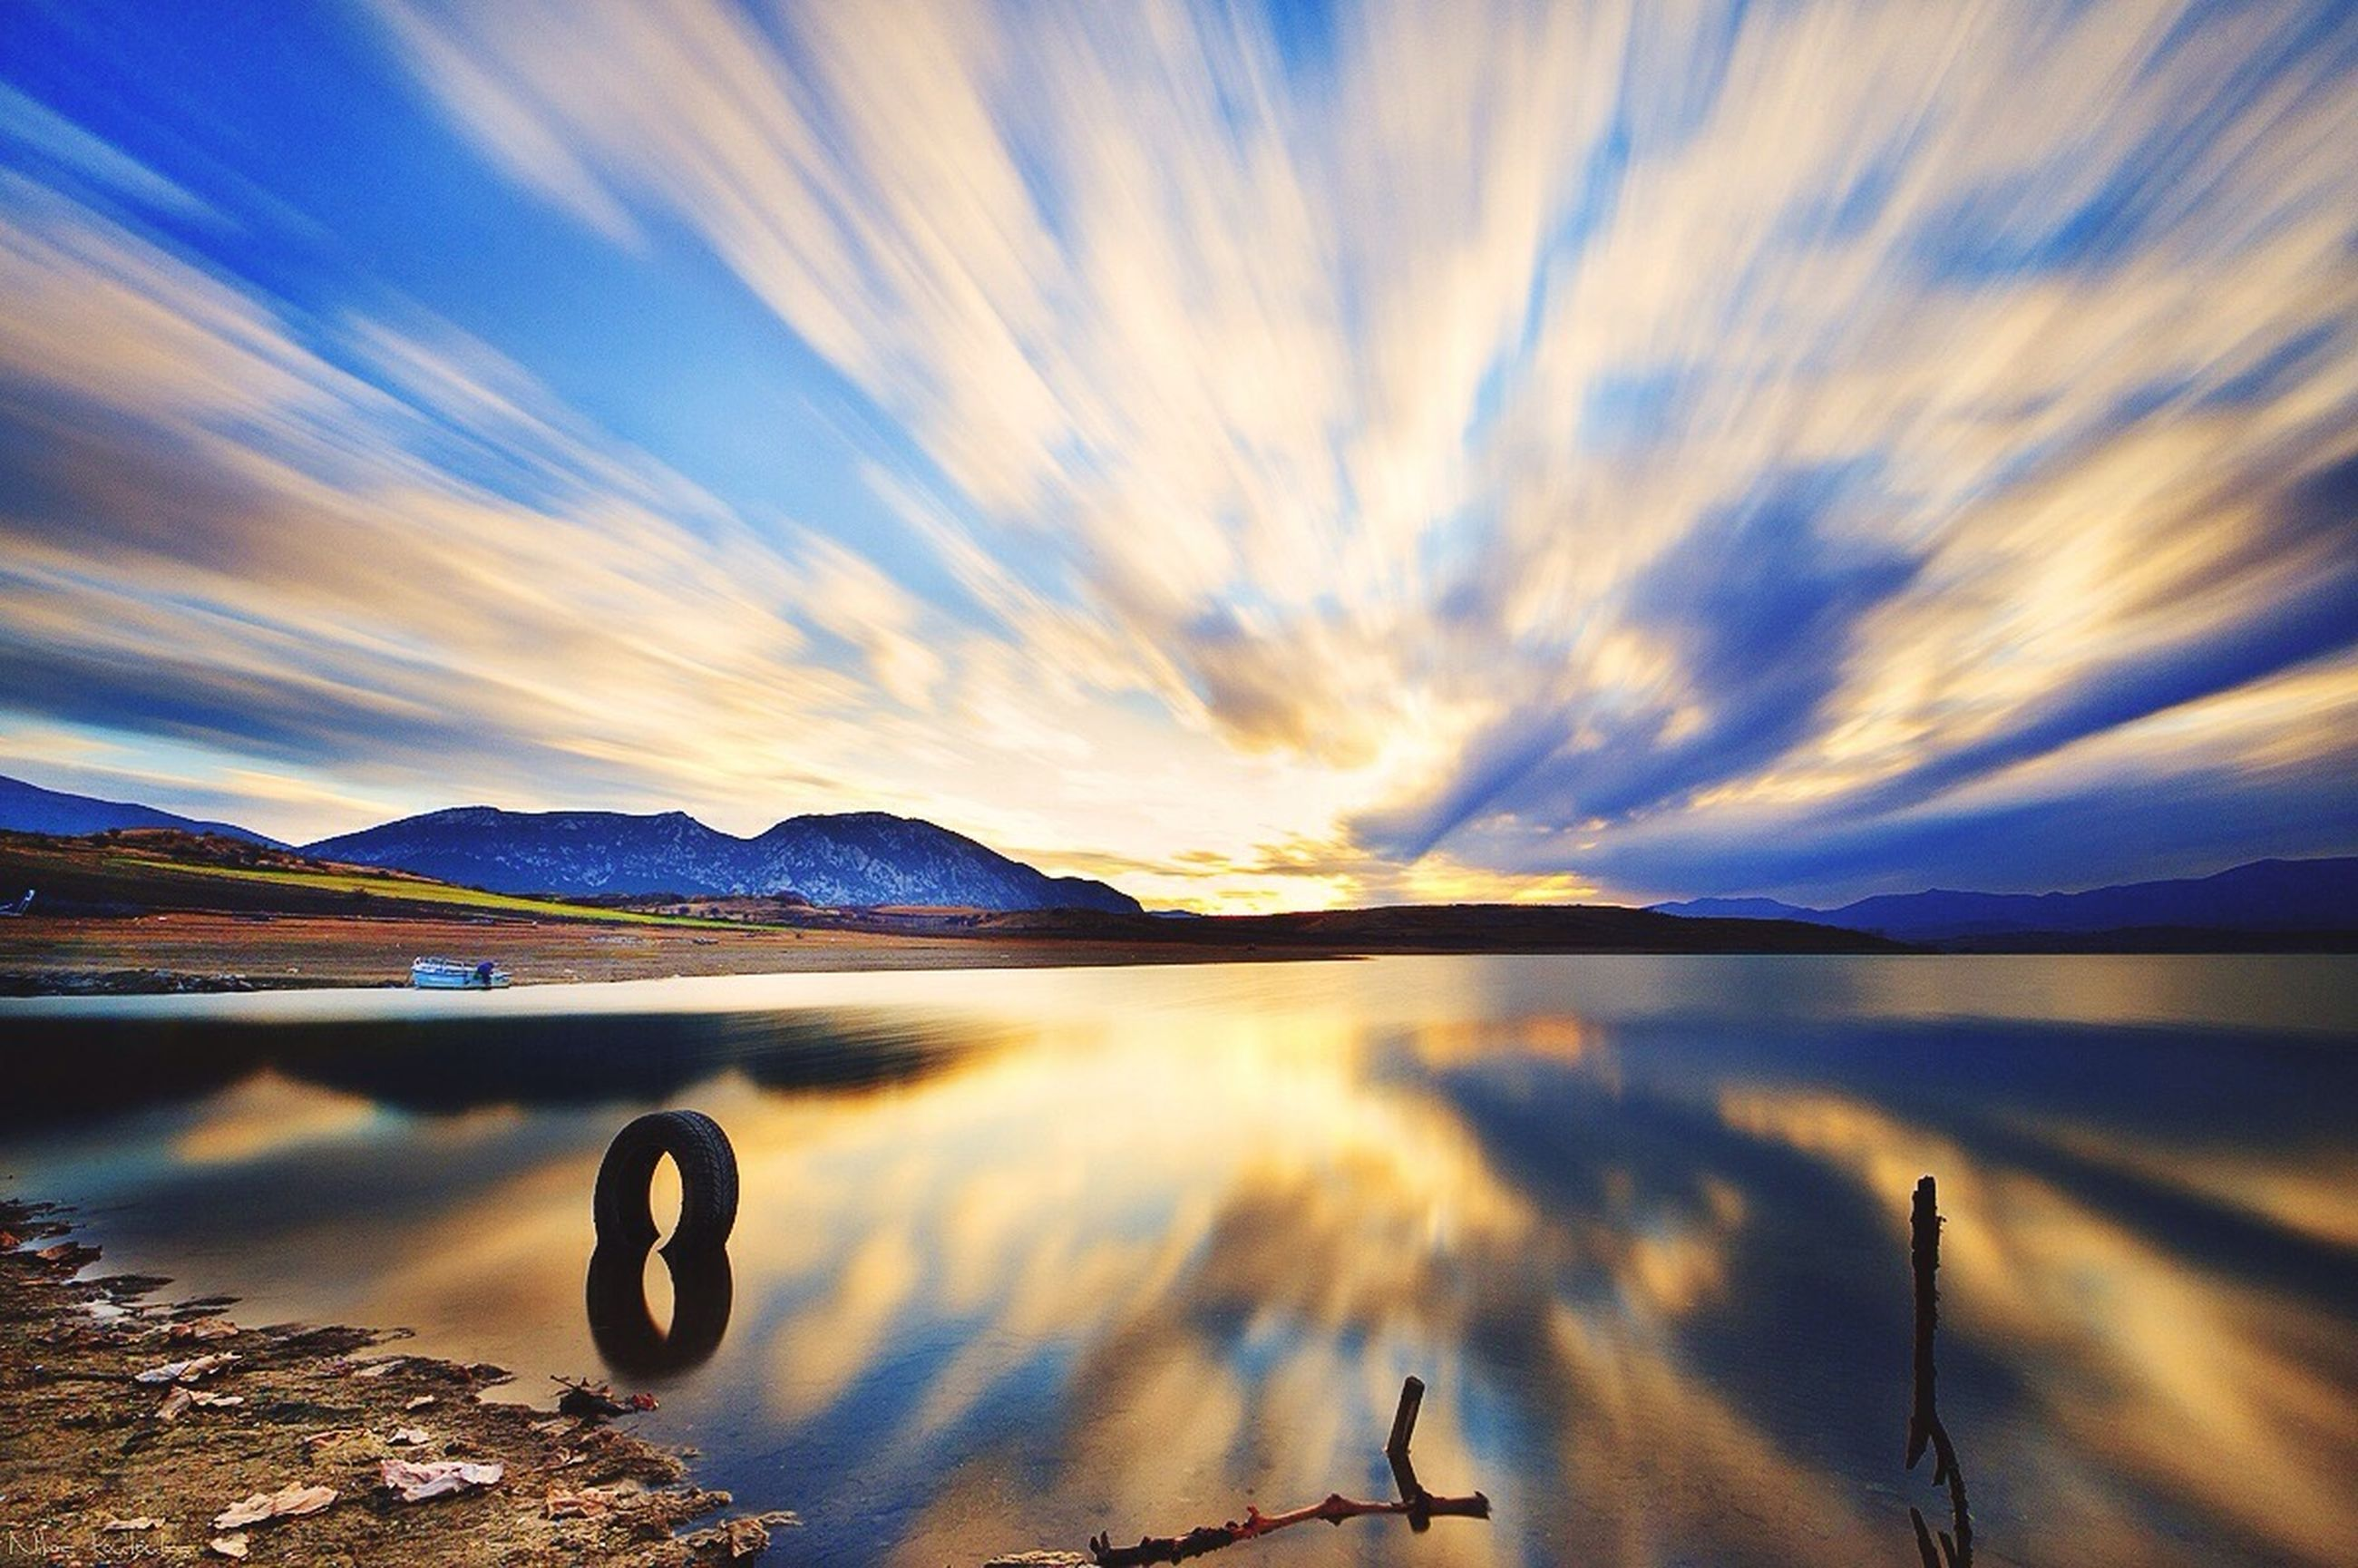 lake, water, sky, tranquil scene, tranquility, scenics, mountain, beauty in nature, cloud - sky, reflection, sunset, nature, mountain range, cloud, idyllic, cloudy, non-urban scene, lakeshore, calm, outdoors